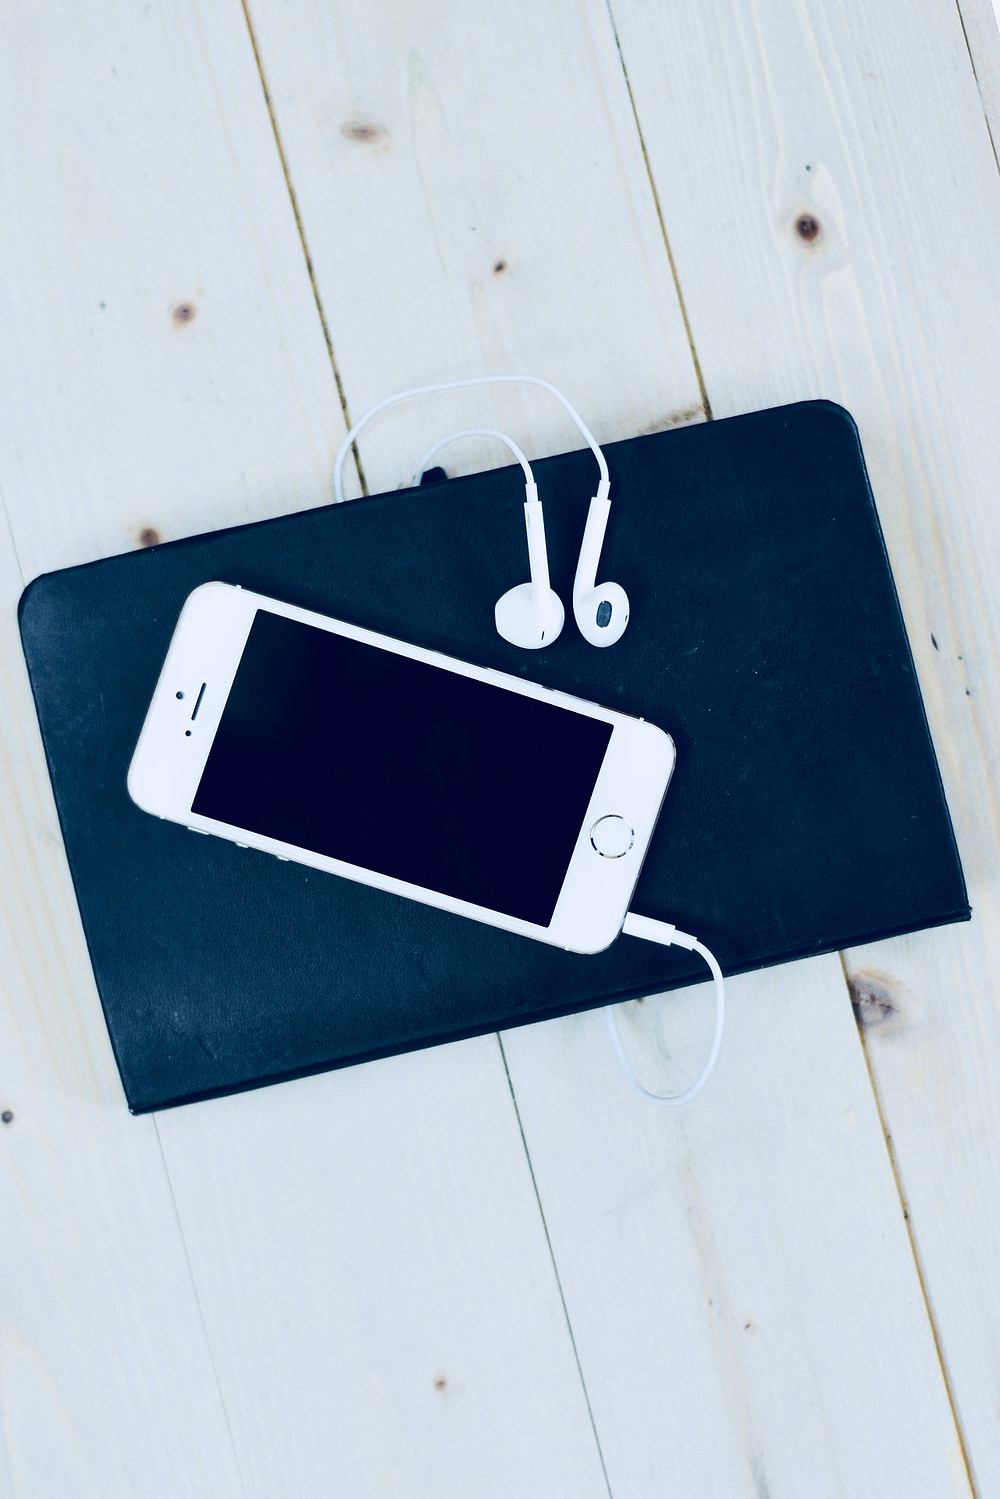 Pic of iPhone with Headphones from Pixabay